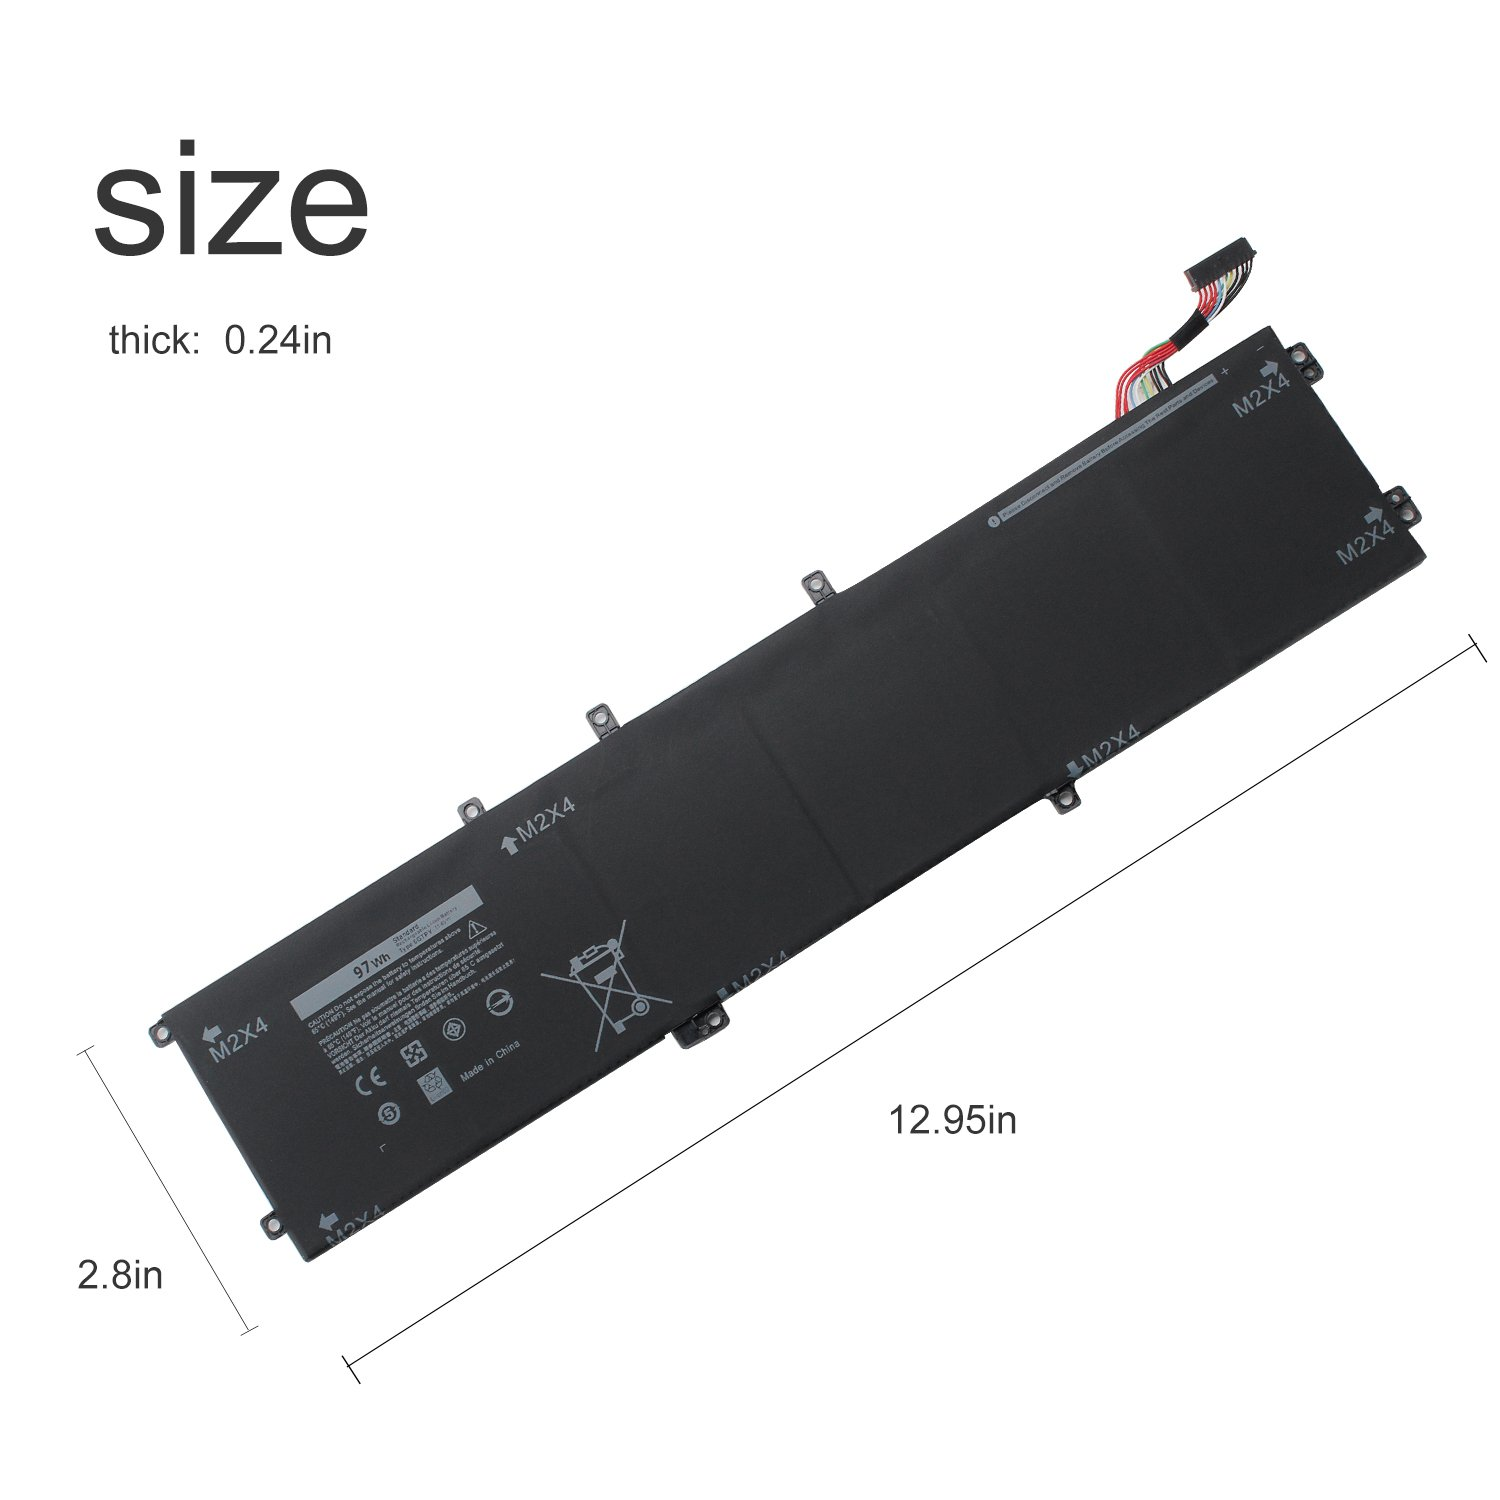 SWEALEER Compatible 6GTPY Battery if Applicable Dell XPS 15 9560 9550 Precision 5510 5520 M5520 Replacement for 5XJ28 i7-7700HQ 5D91C Laptop [Li-ion 6 Cell 11.4V 97Wh 18 Months Warranty 6GTPY] by SWEALEER (Image #5)